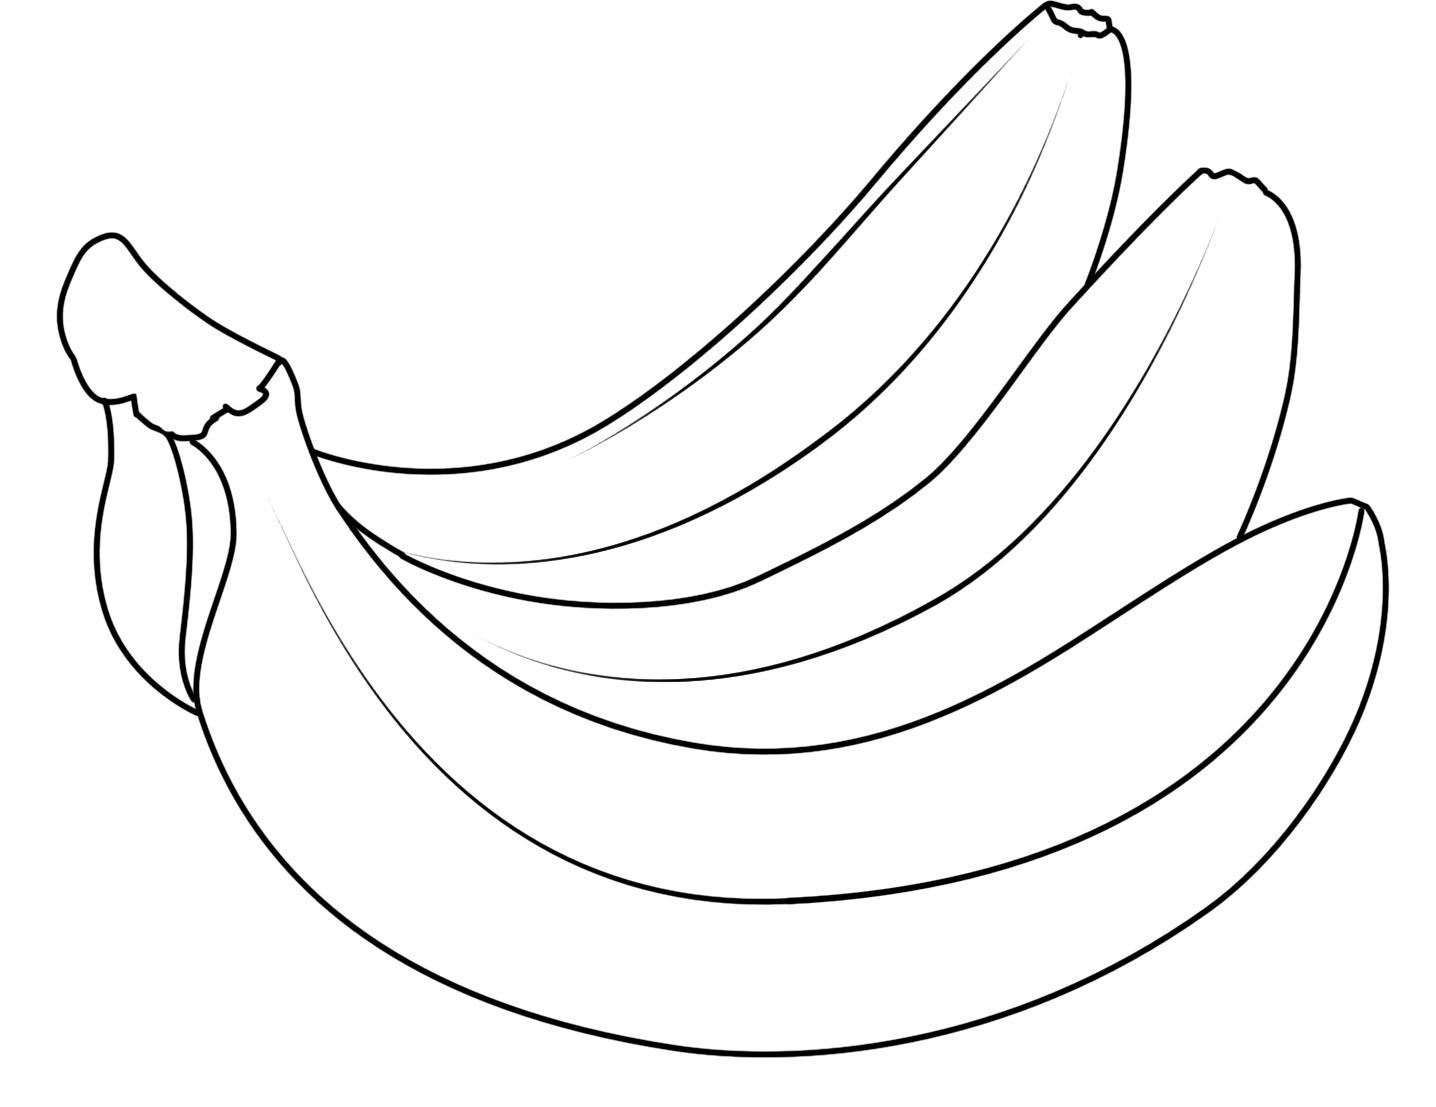 Pictures Three Bananas Fruit Coloring Pages